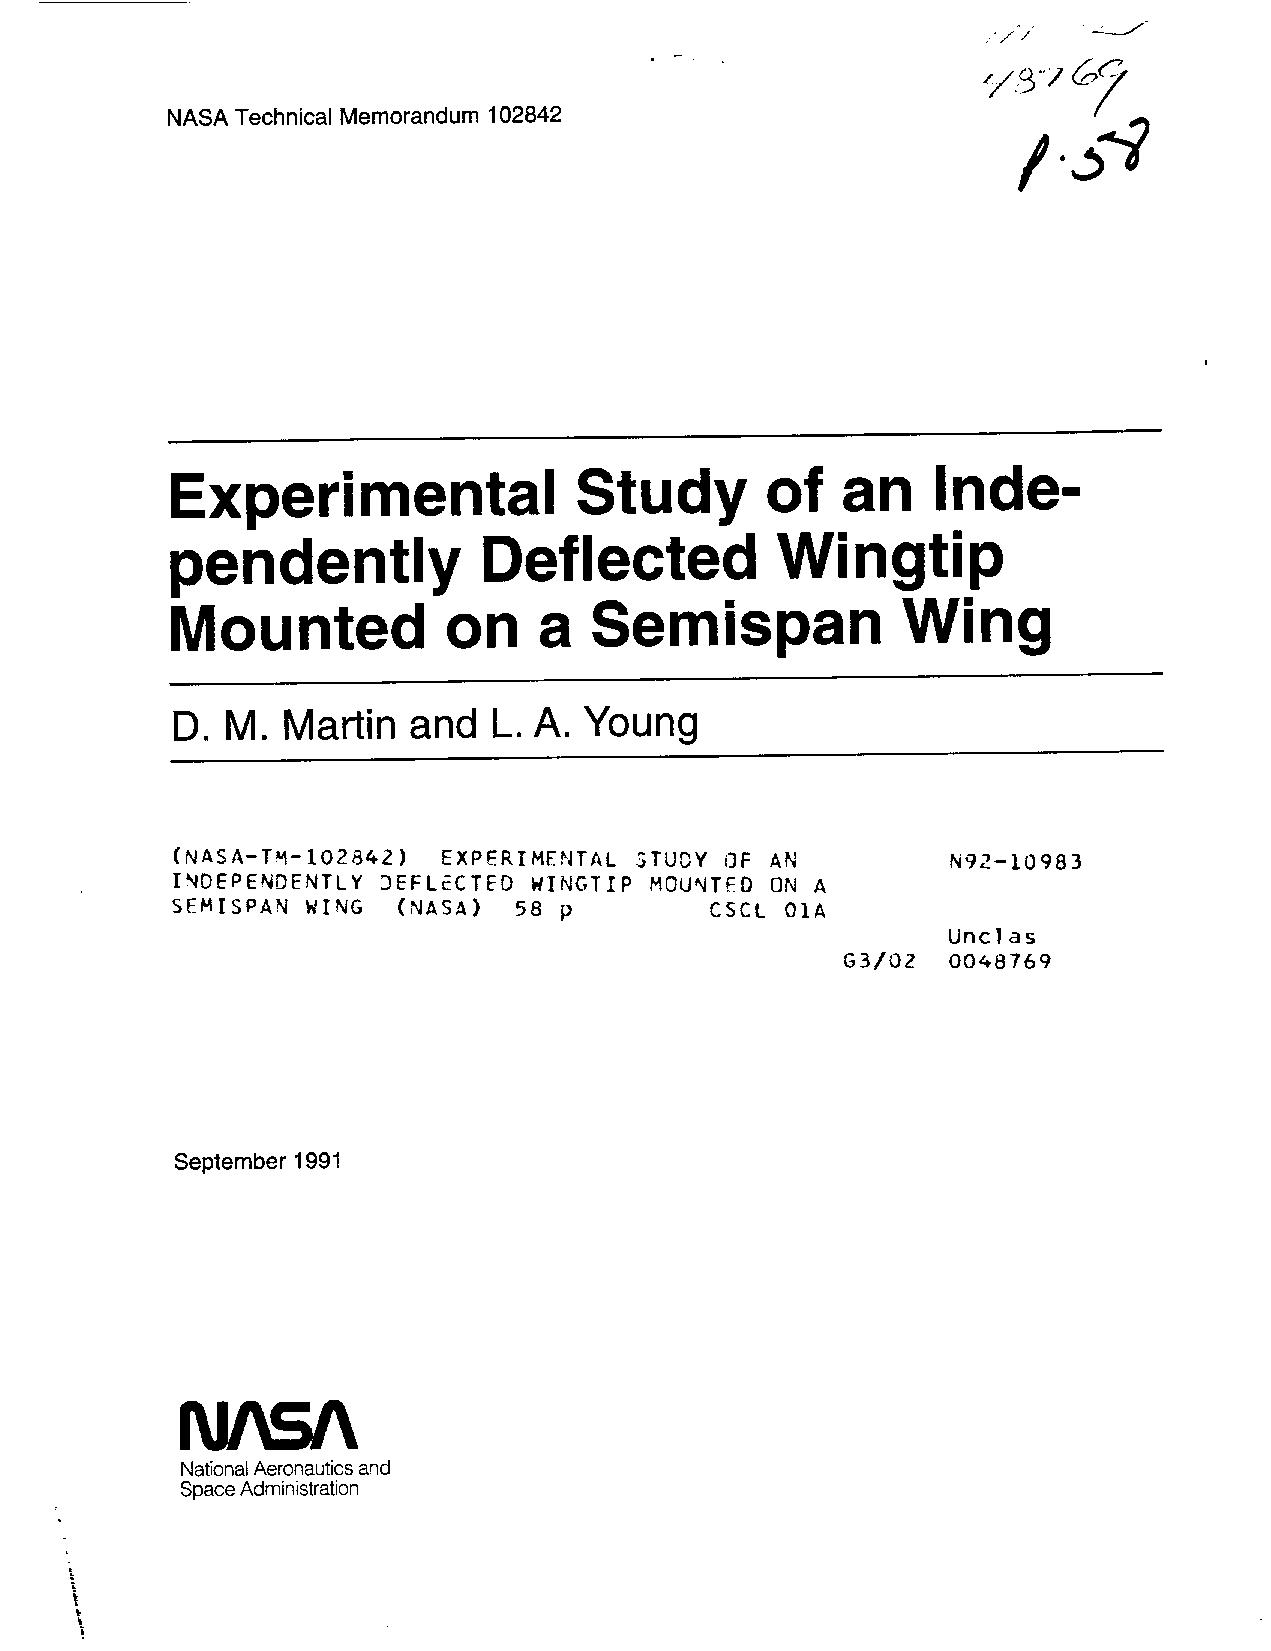 D. M. Martin - Experimental study of an independently deflected wingtip mounted on a semispan wing